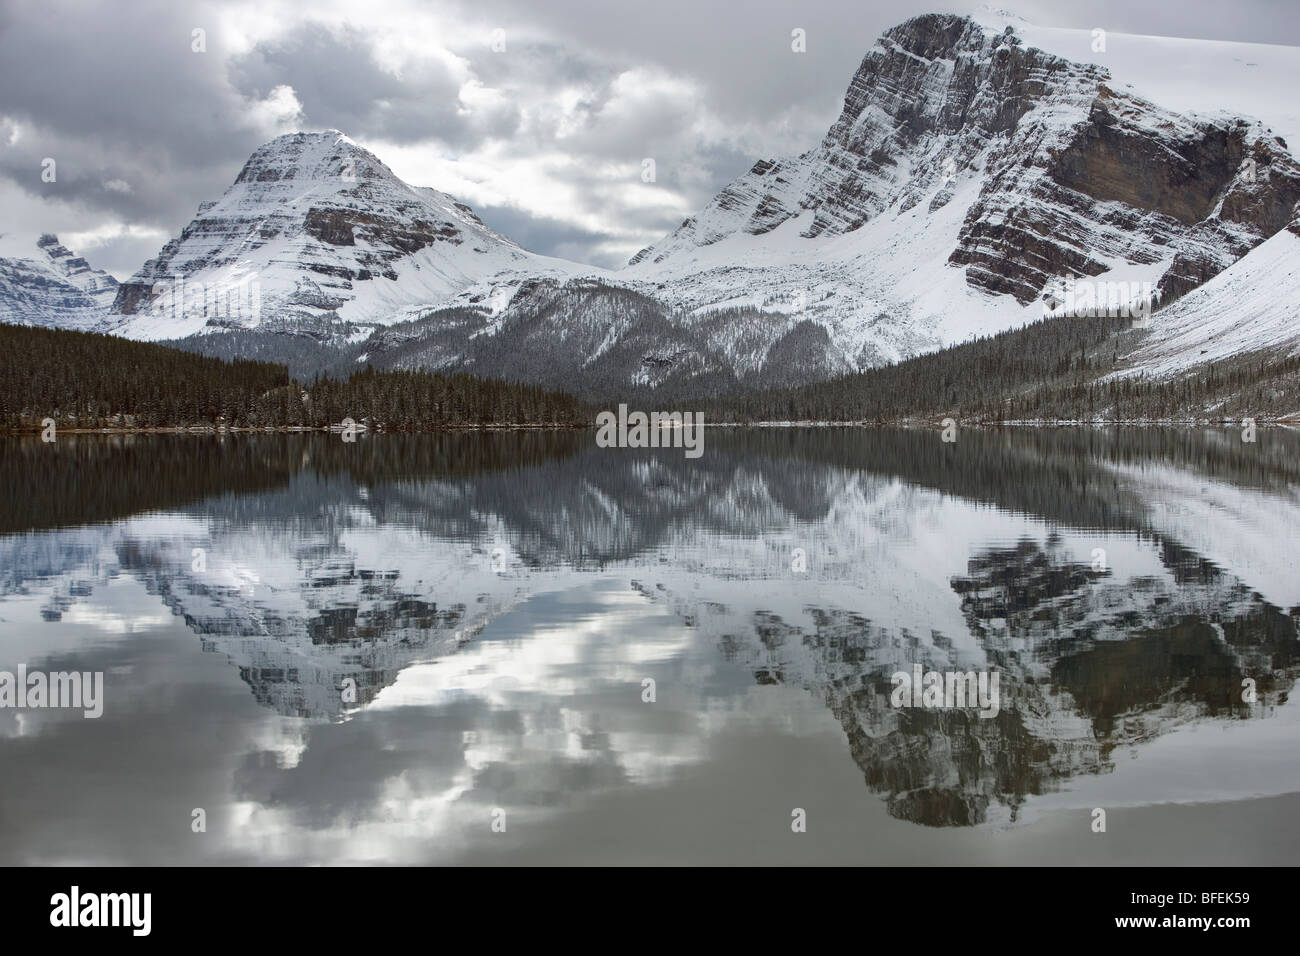 Bow Lake, Bow Peak at Bow Summit, Banff National Park, Alberta, Canada - Stock Image